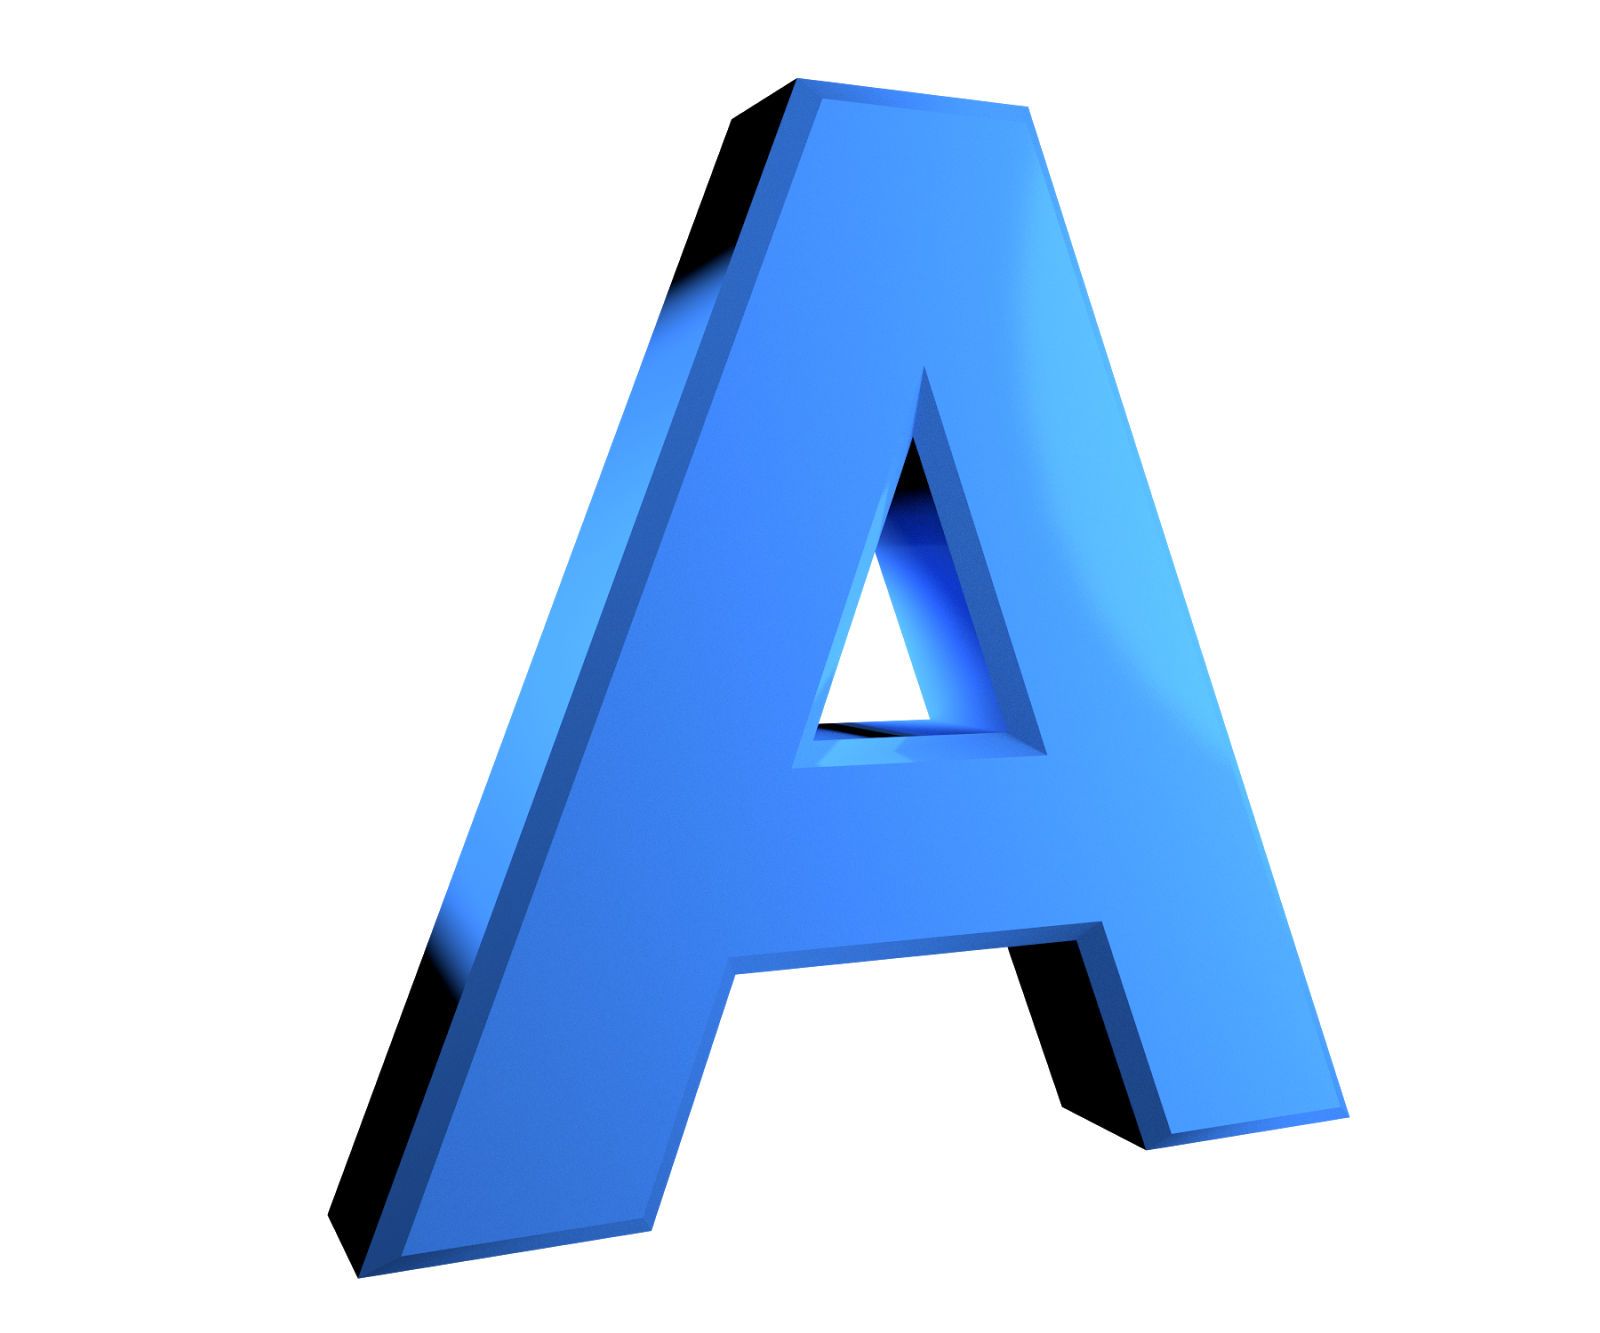 Letter A HD PNG - 117433